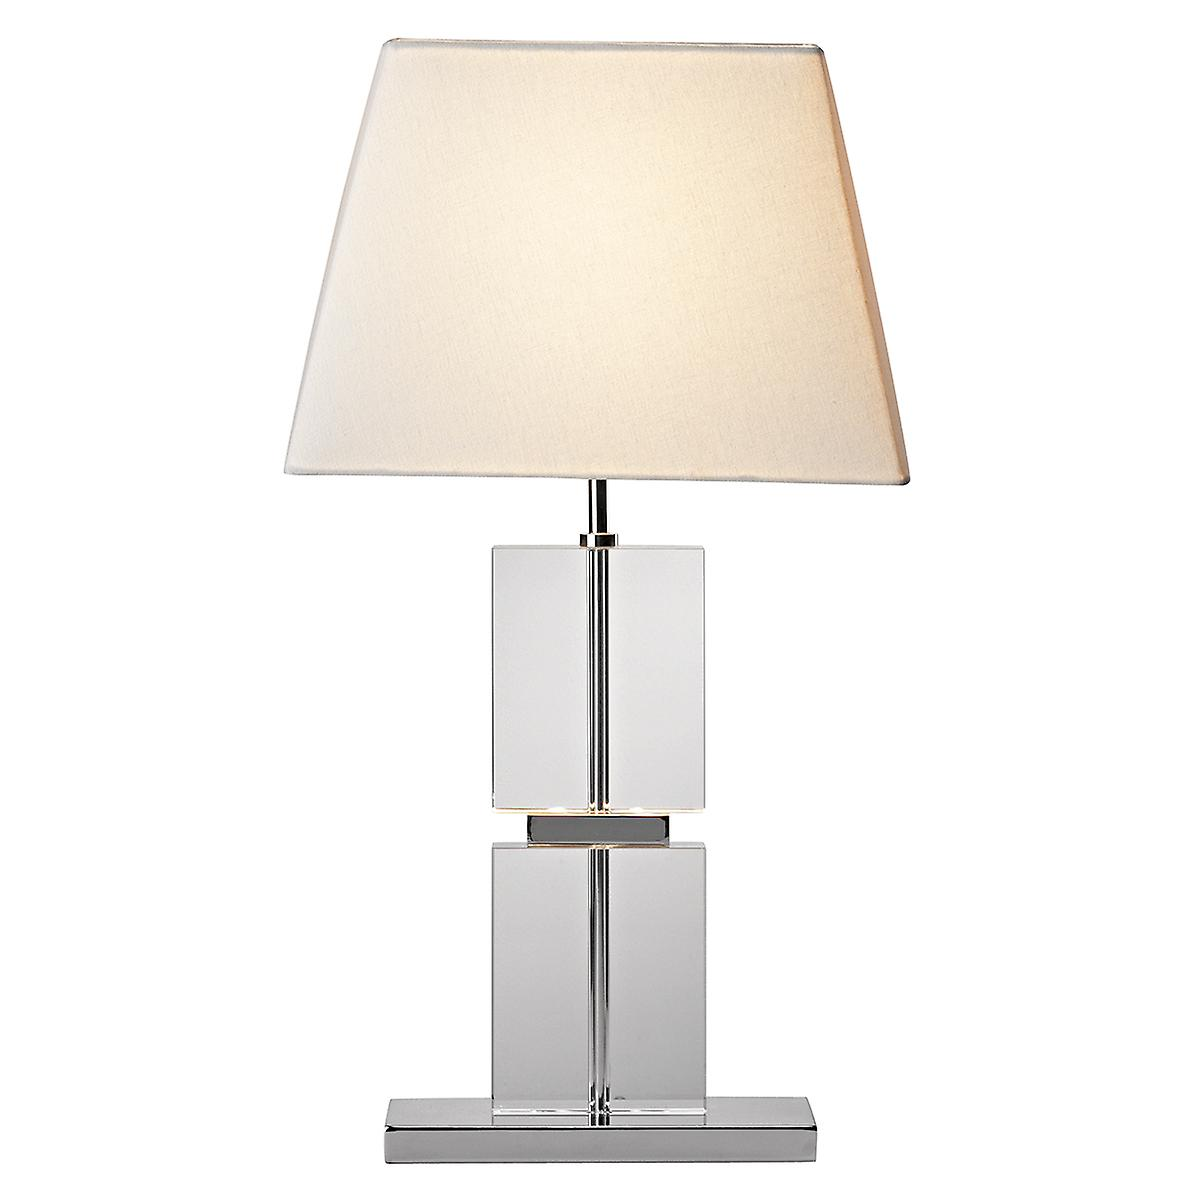 Dar DRE4050 Dream Modern Table Lamp With Quartz Glass And Cream Shade